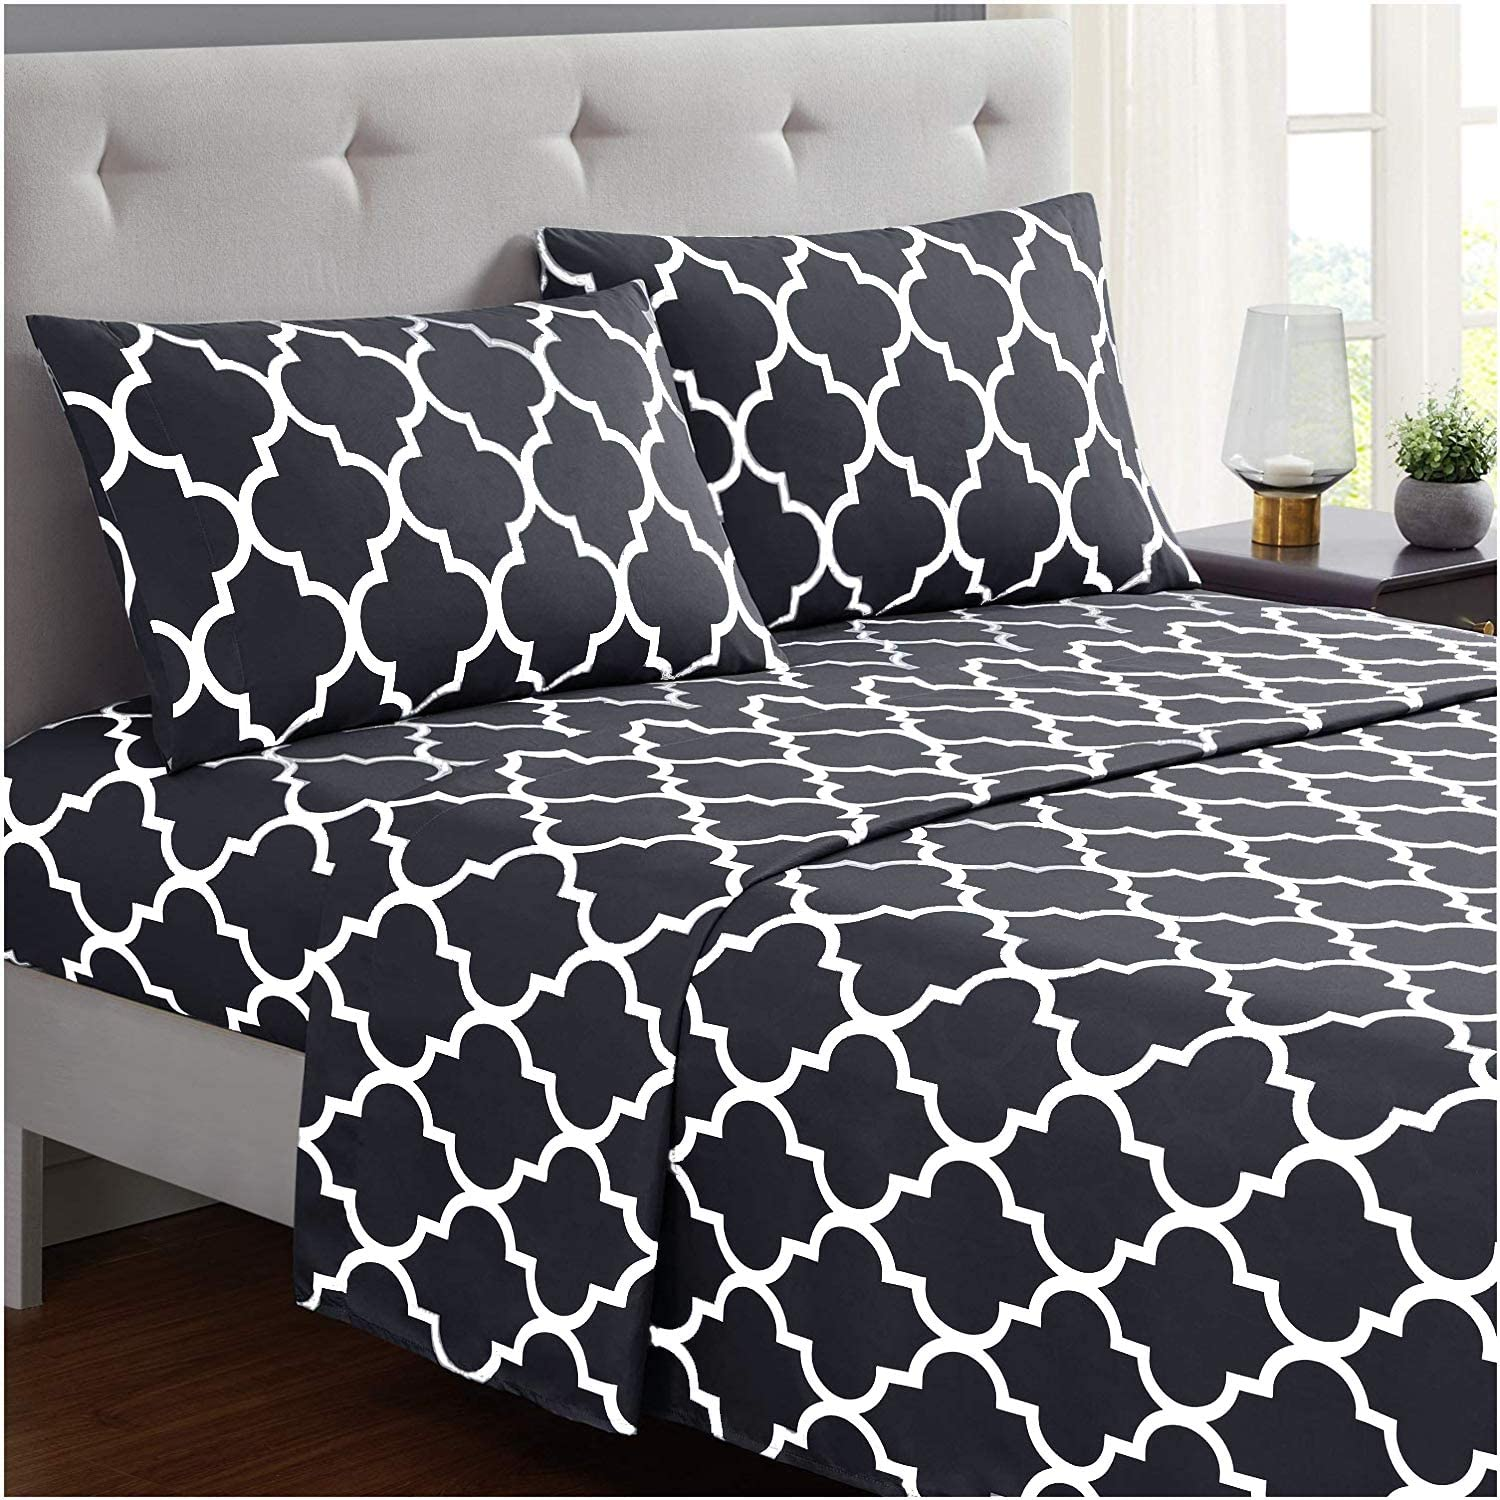 Mellanni Bed Sheet Set Queen-Dark-Gray - Brushed Microfiber Printed Bedding - Deep Pocket, Wrinkle, Fade, Stain Resistant - 4 Piece (Queen, Quatrefoil Dark Gray)